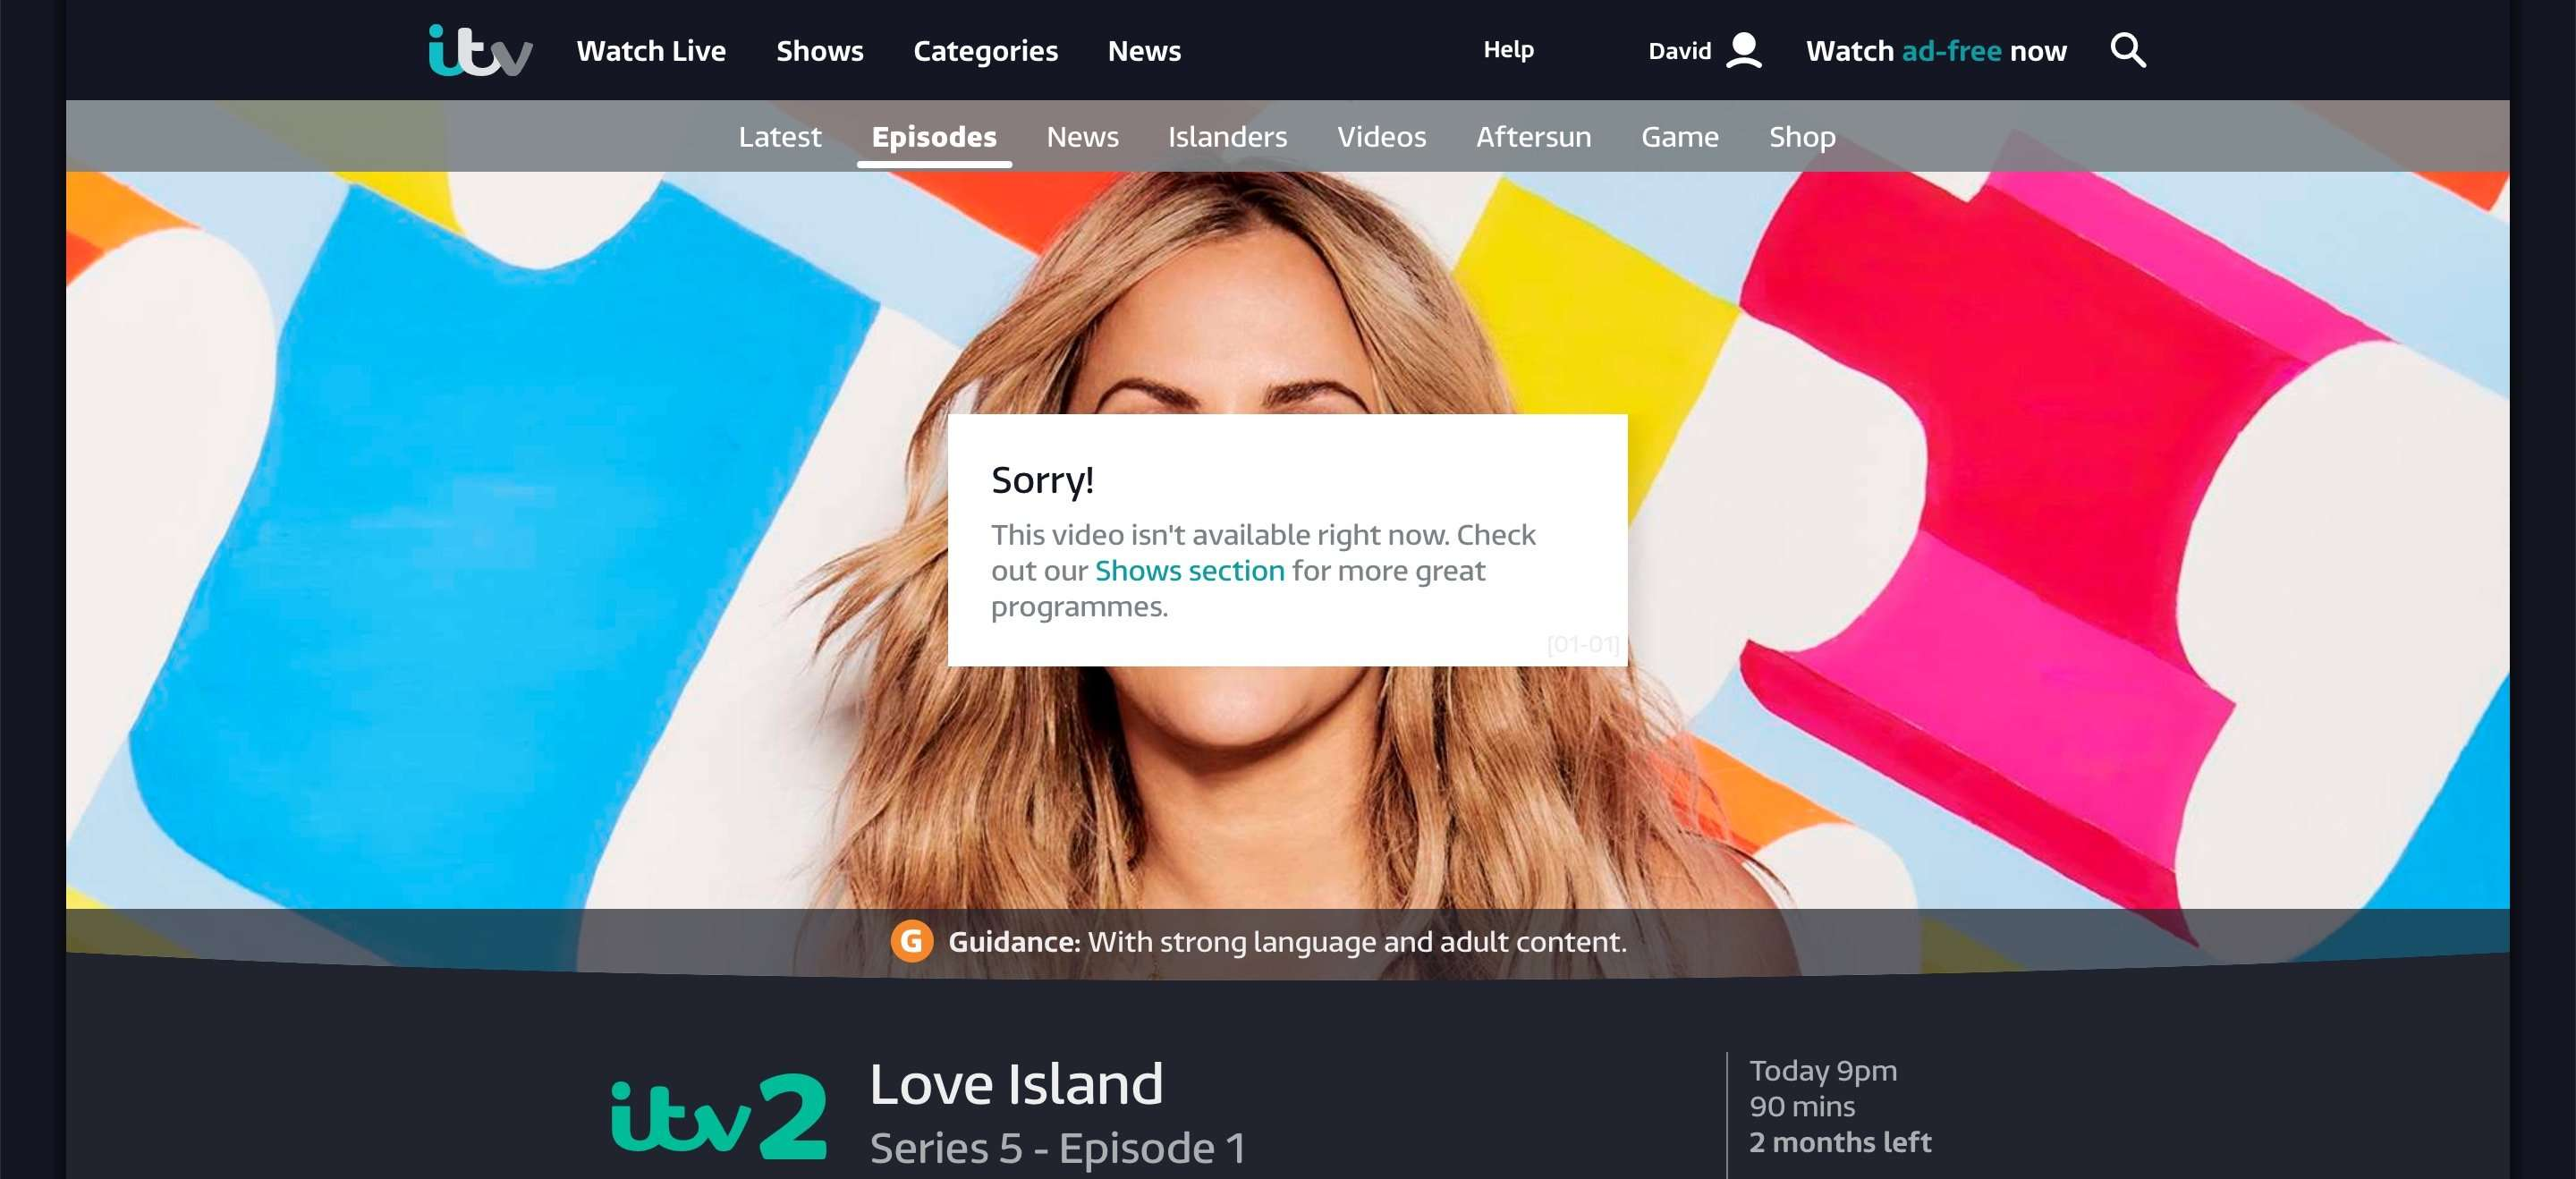 ITV Hub not working with VPN? Here's how to fix that!